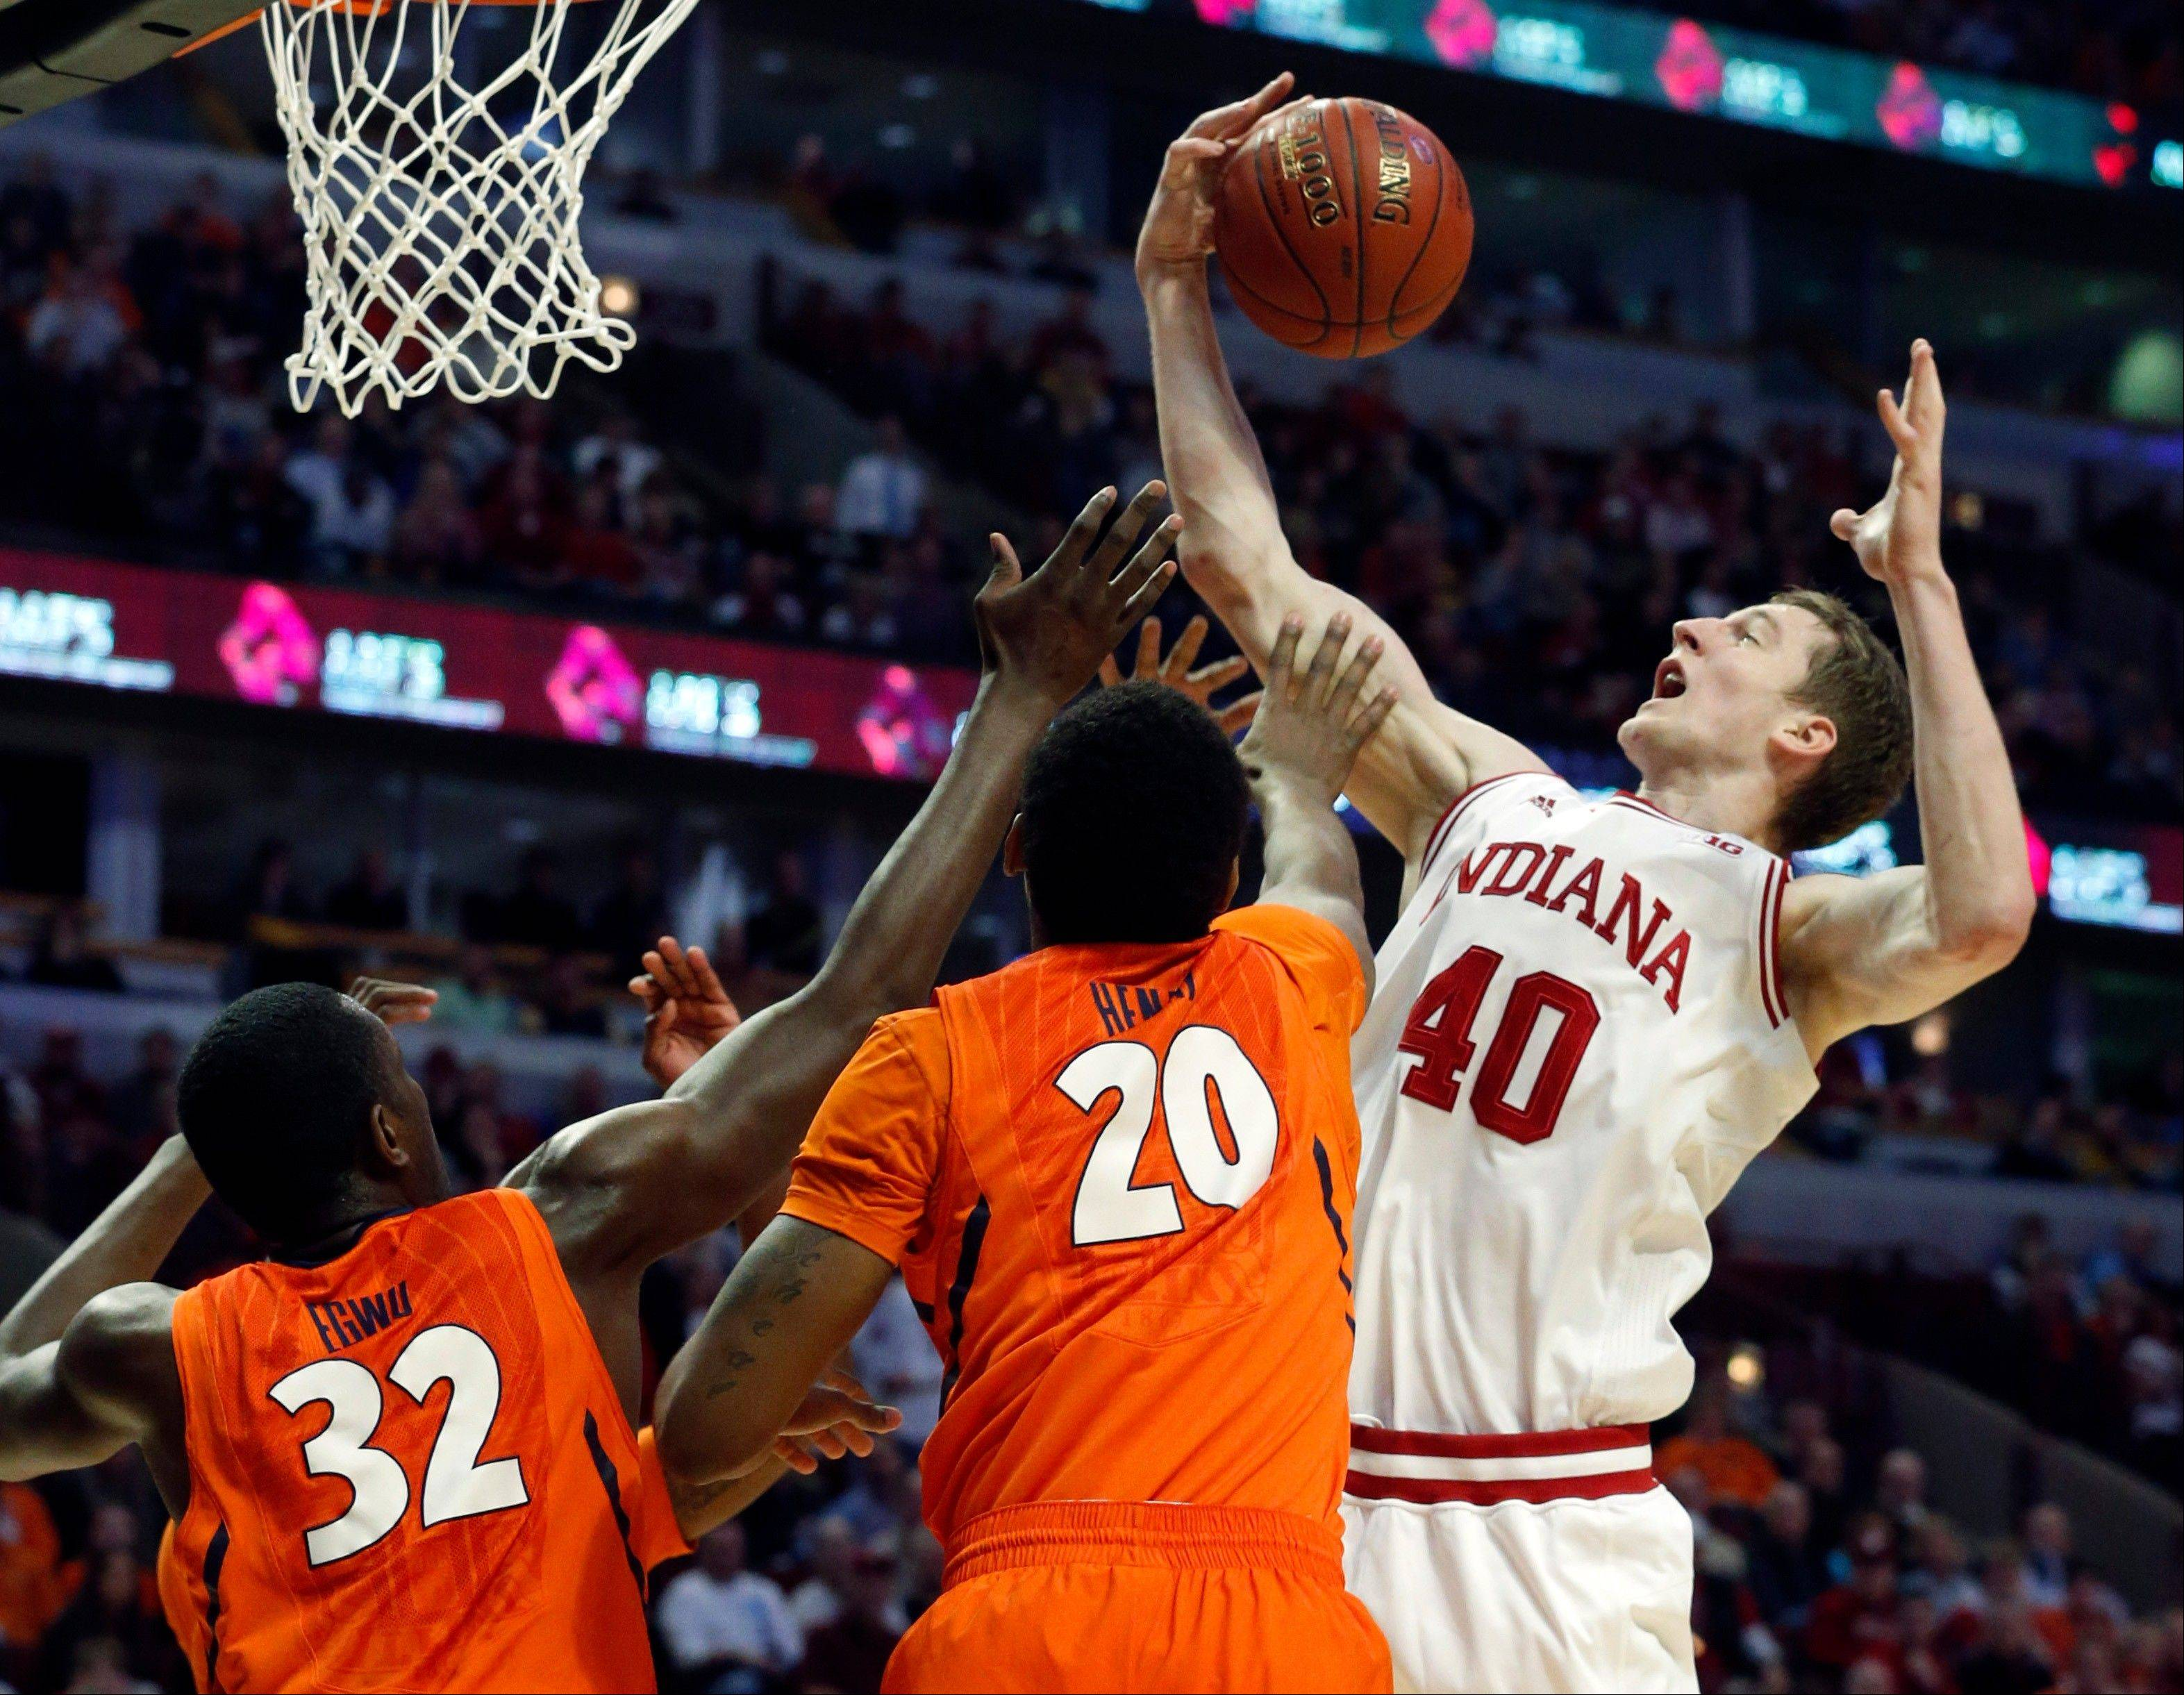 Indiana's Cody Zeller rebounds over Illinois' Nnanna Egwu (32) and Myke Henry (20) during the first half of an NCAA college basketball game at the Big Ten tournament Friday, March 15, 2013, in Chicago. (AP Photo/Charles Rex Arbogast)